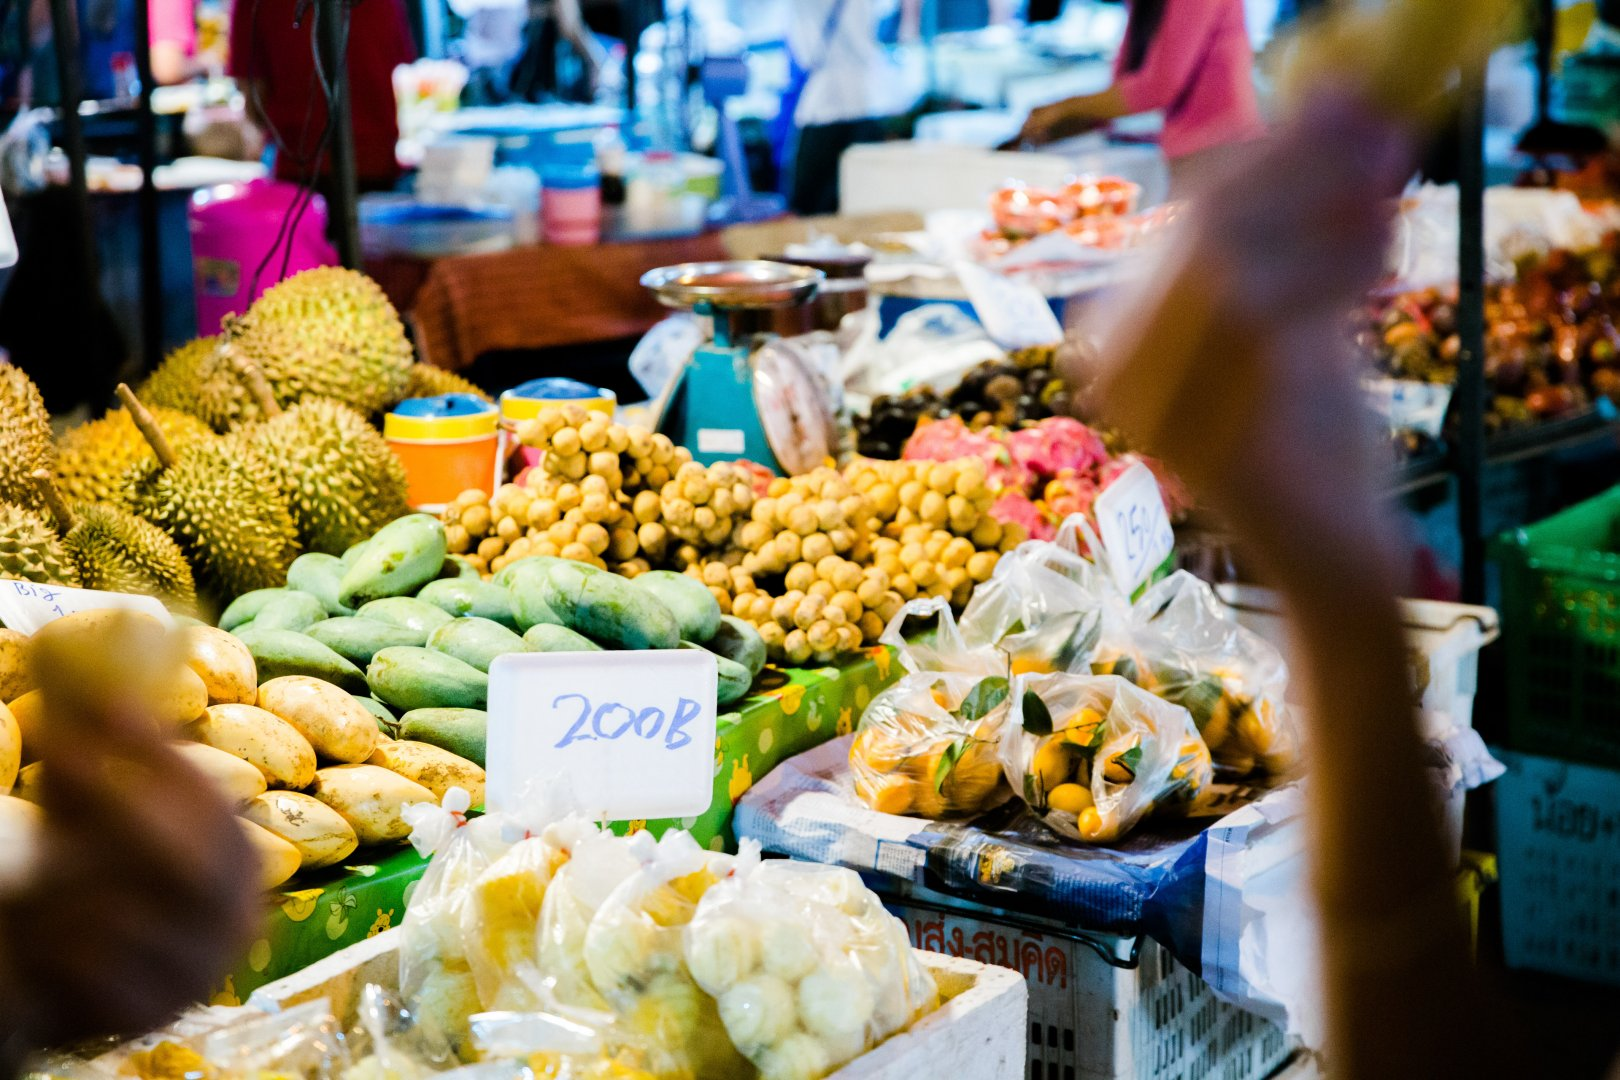 Natural foods Whole food Selling Local food Market Marketplace Bazaar Public space Food Human settlement Greengrocer Vegetable Trade Vegan nutrition Grocery store City Grocer Fruit Produce Plant Vegetarian food Hawker Shopkeeper Cuisine Stall Delicacy